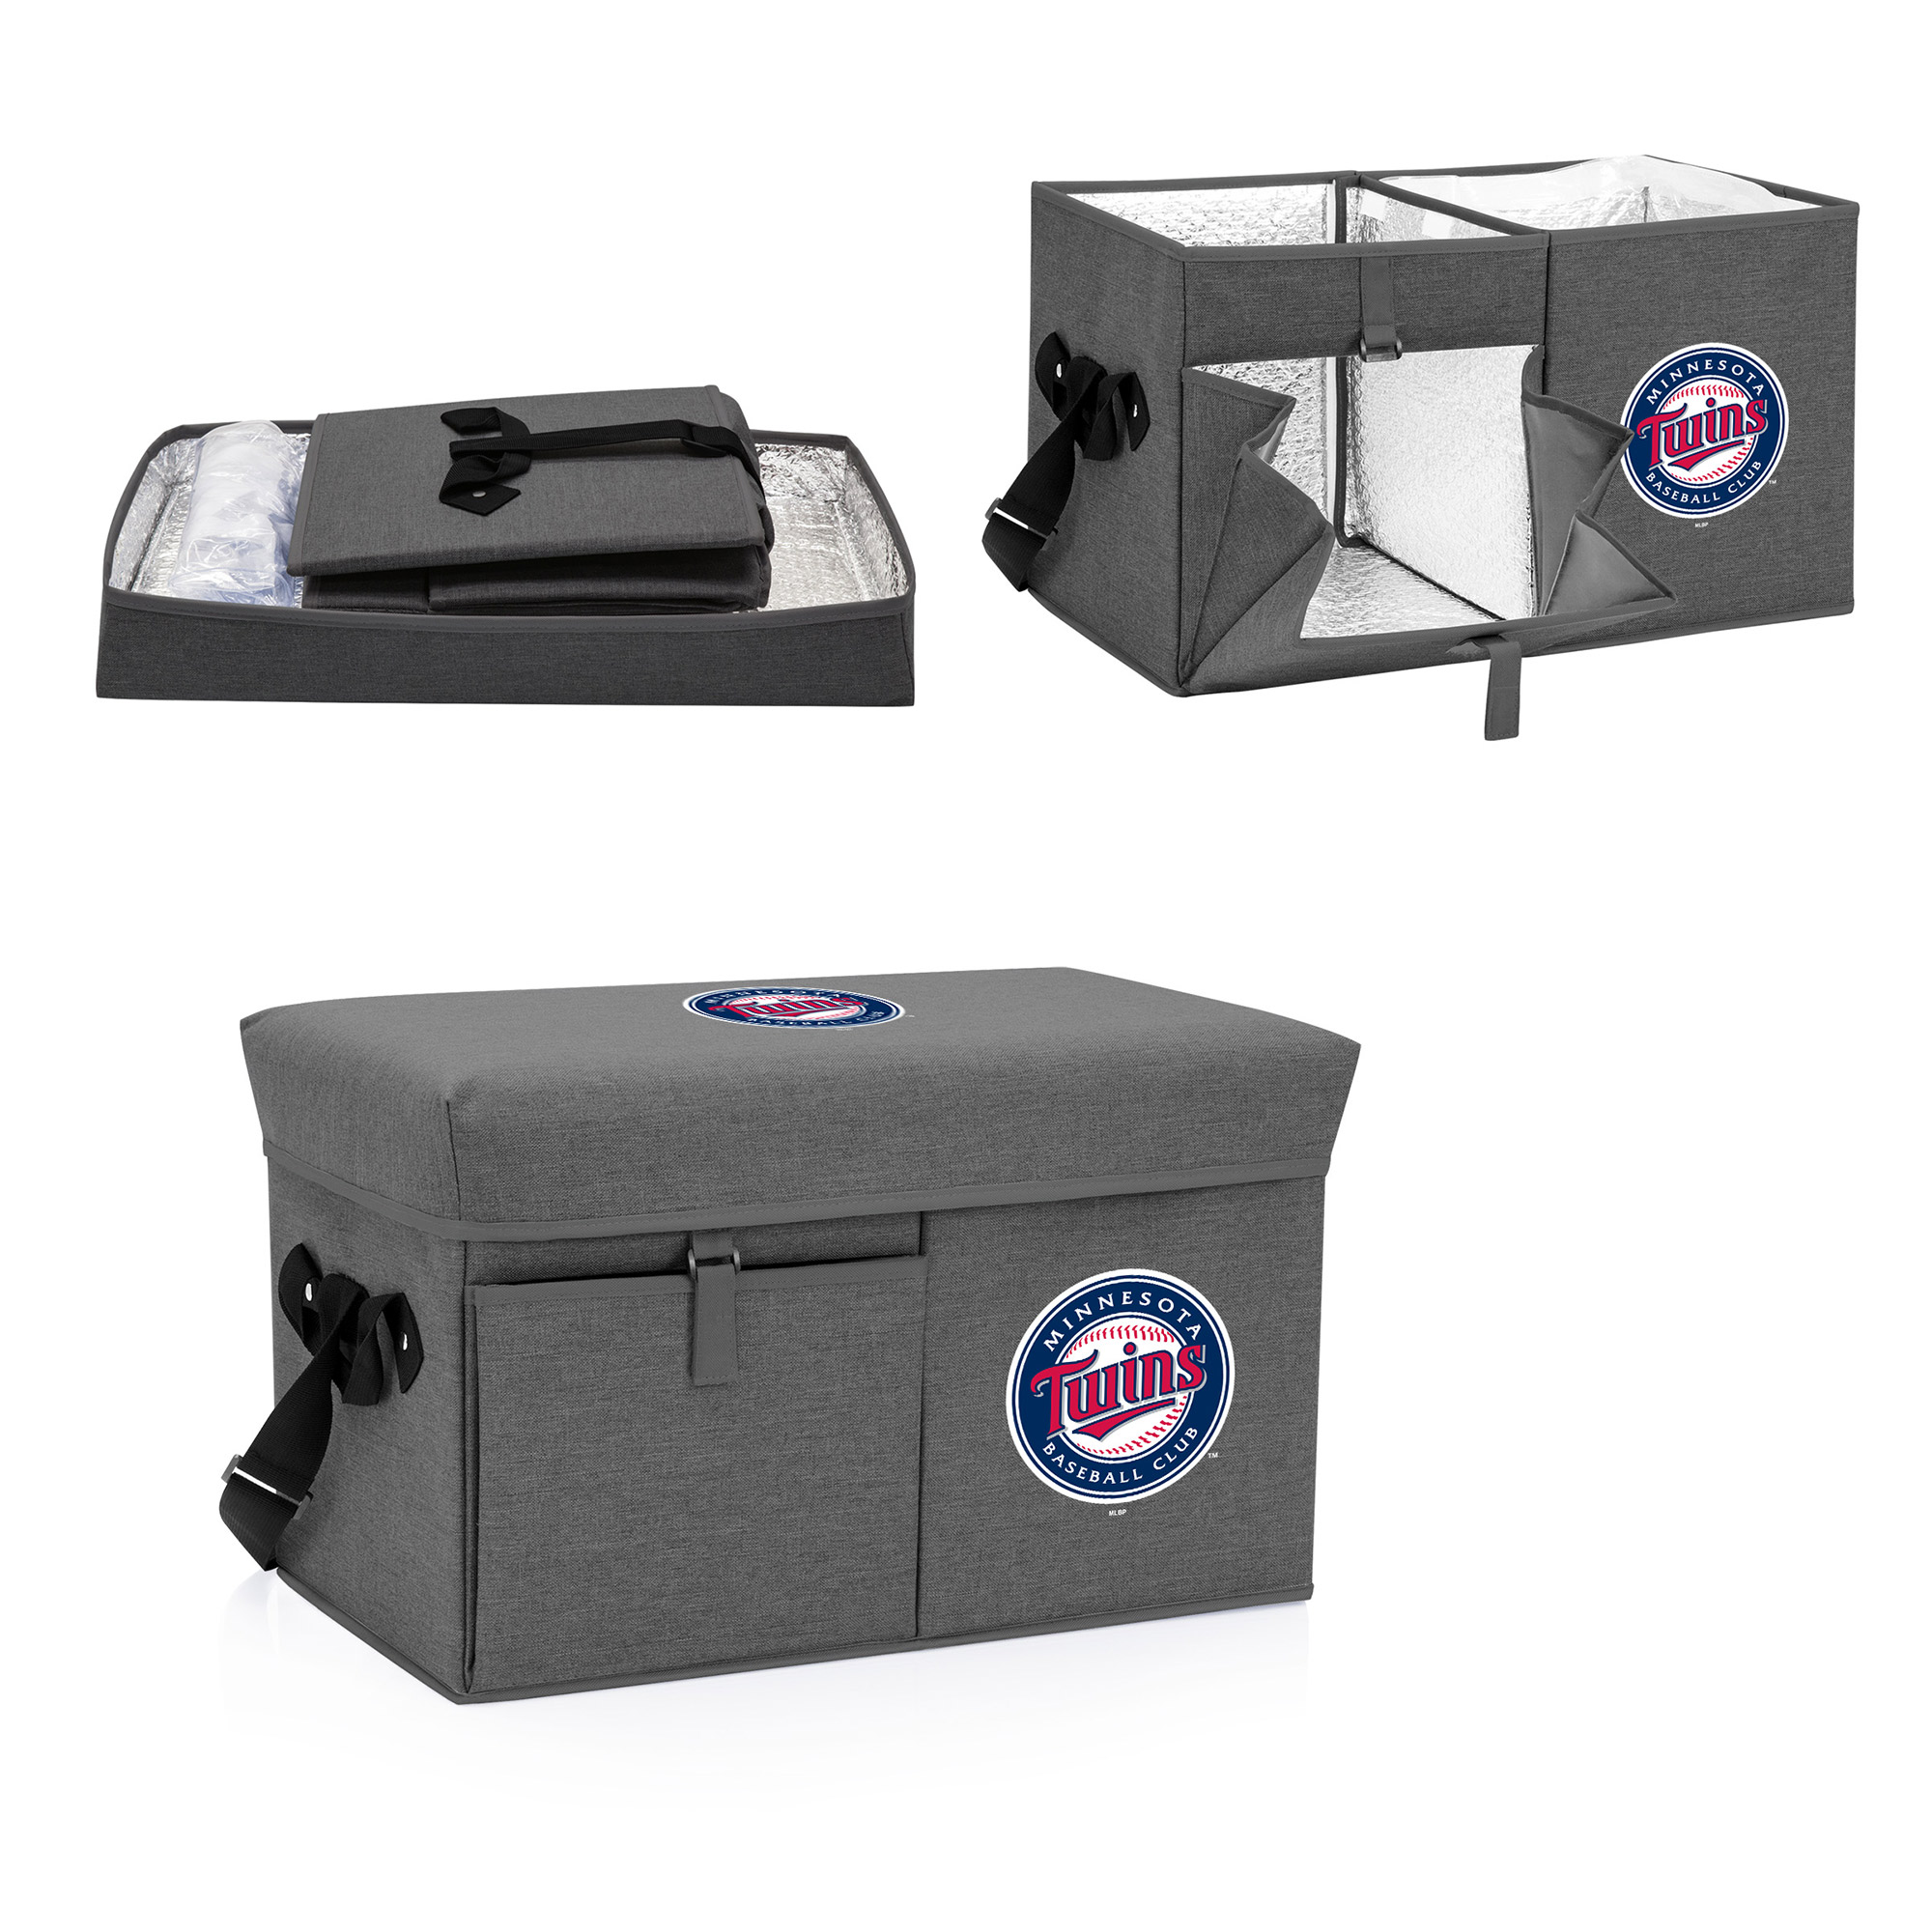 Minnesota Twins Ottoman Cooler & Seat - Gray - No Size